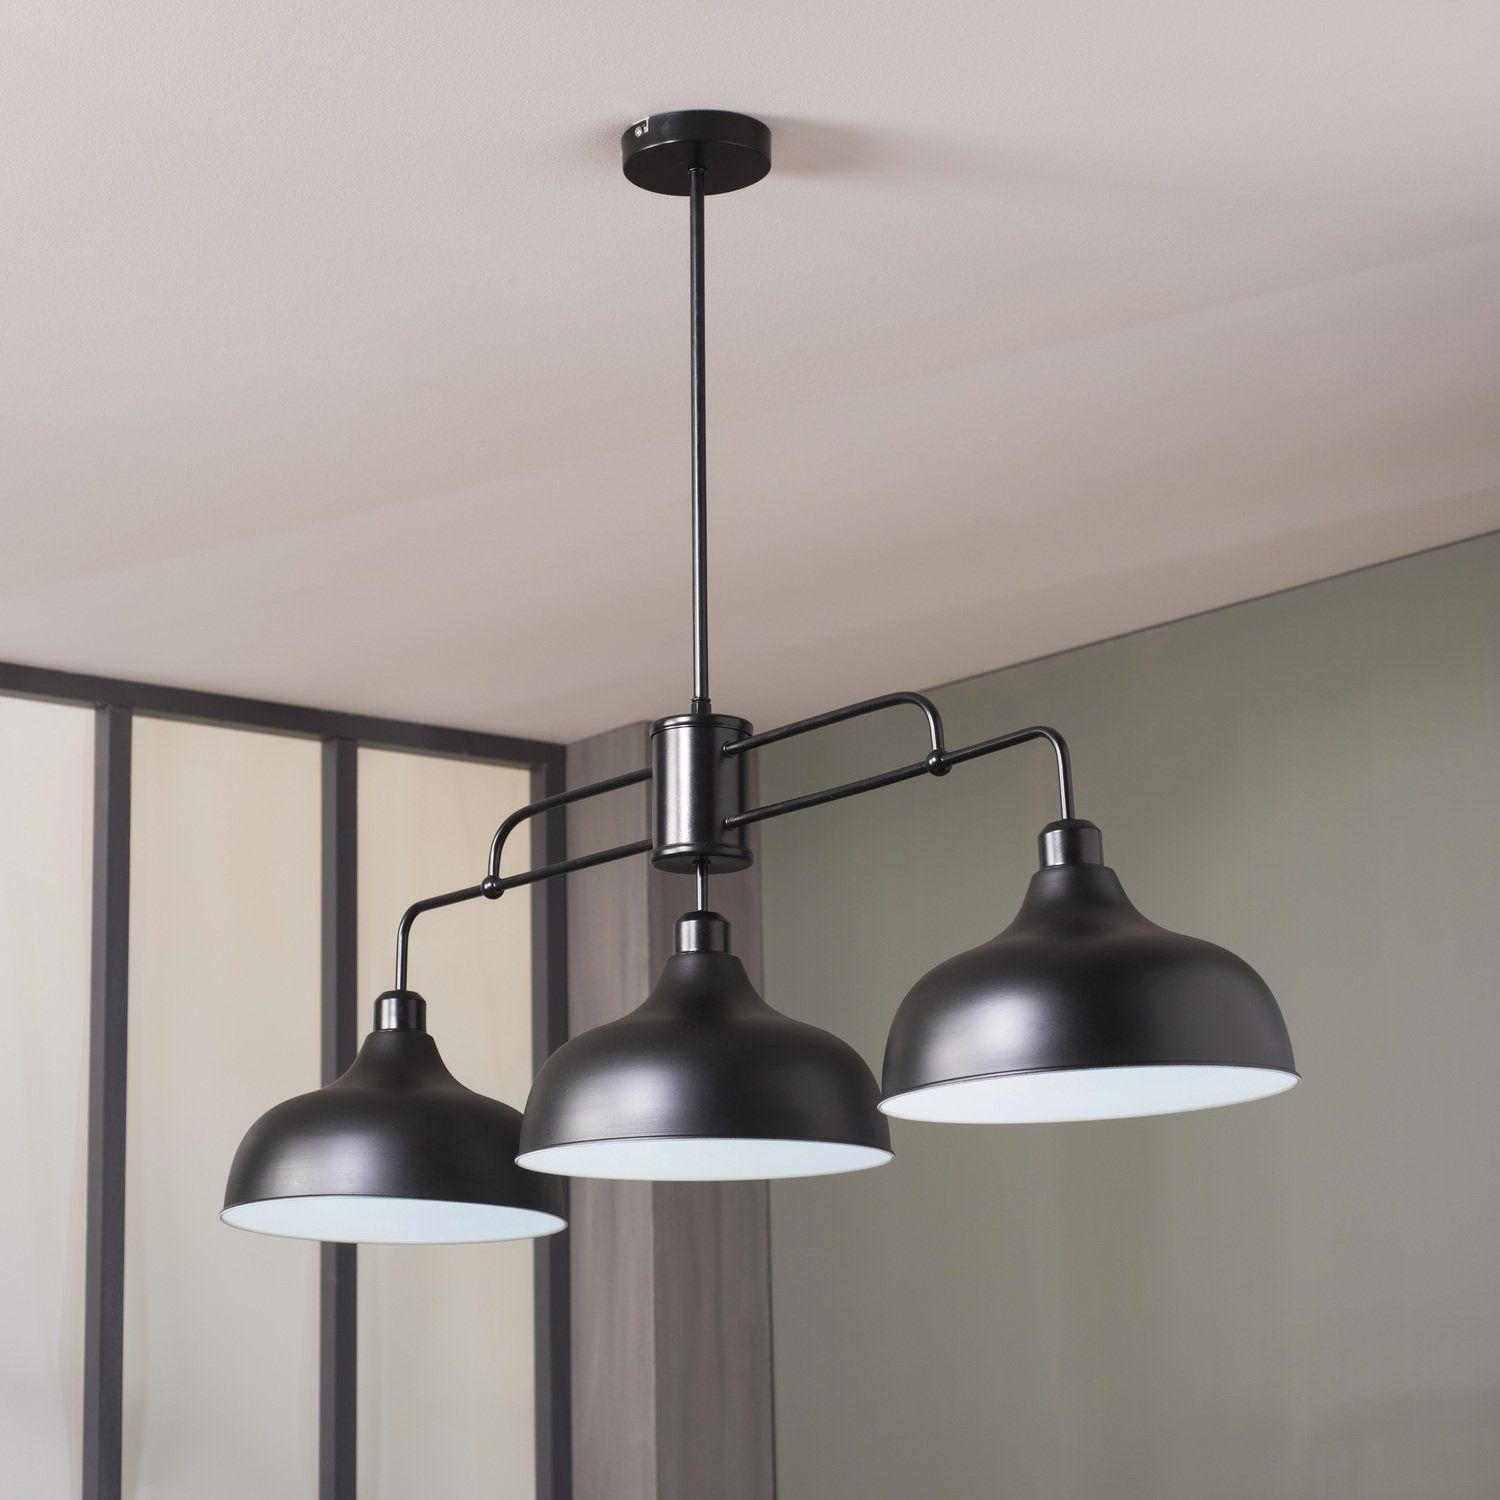 Cette suspension design adopte un style r solument for Suspension moderne pas cher